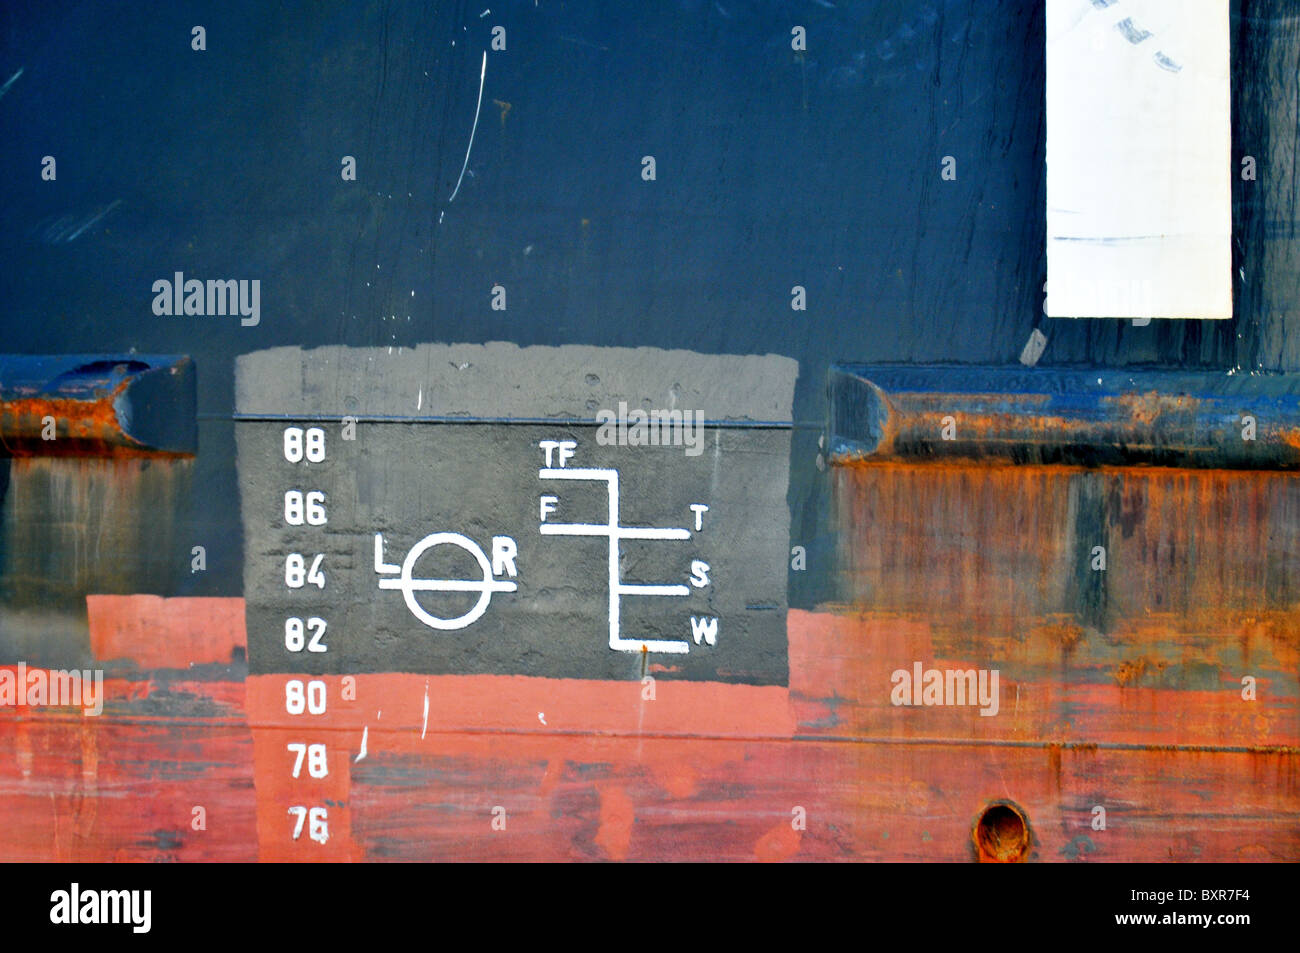 Plimsoll load line on side of ship, Mississippi River, New Orleans, Louisiana - Stock Image